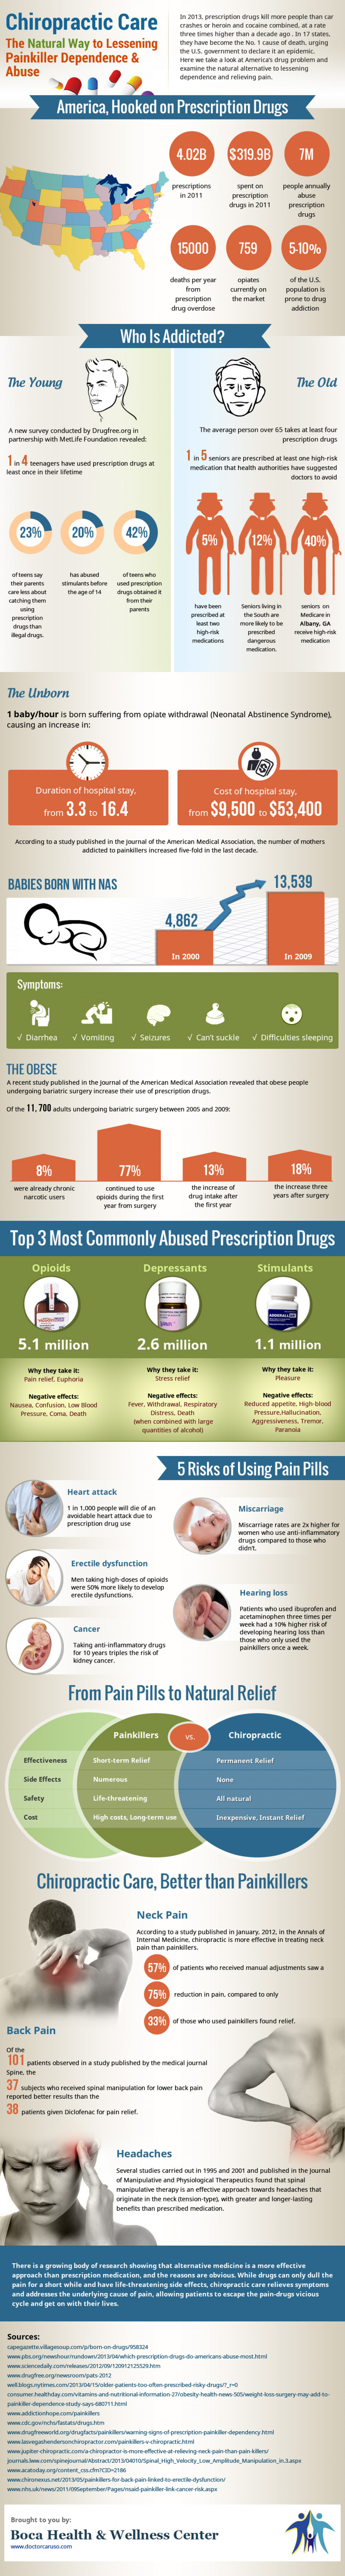 Chiropractic Care: The Natural Way to Lessening Painkiller Dependence & Abuse Infographic